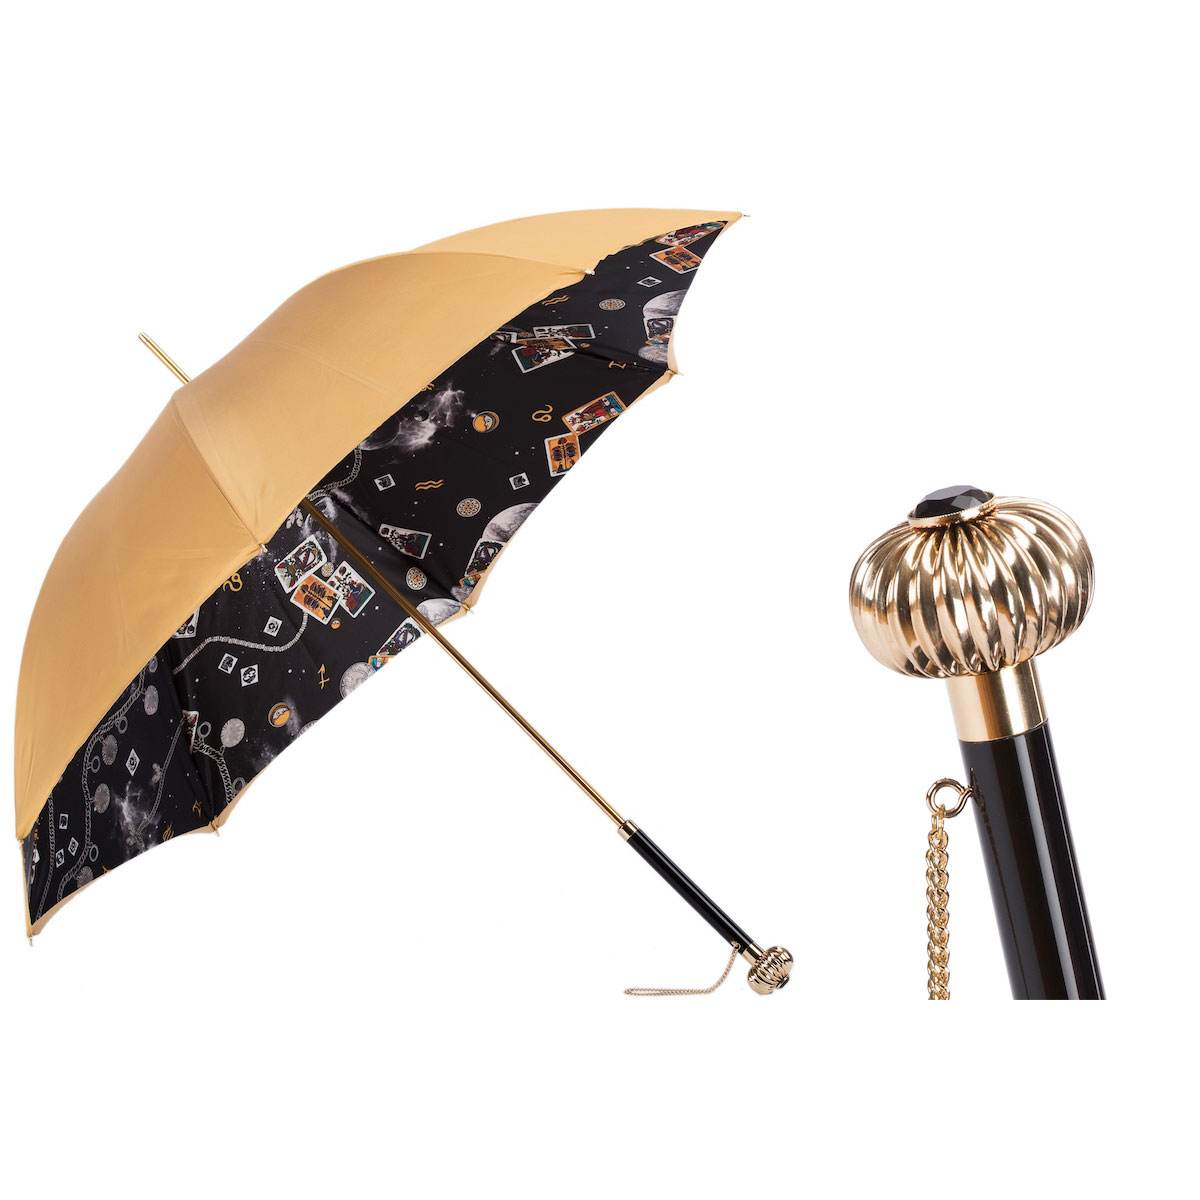 Pasotti Women's Classic Mystery Umbrella - Gold - Jeweled Handle